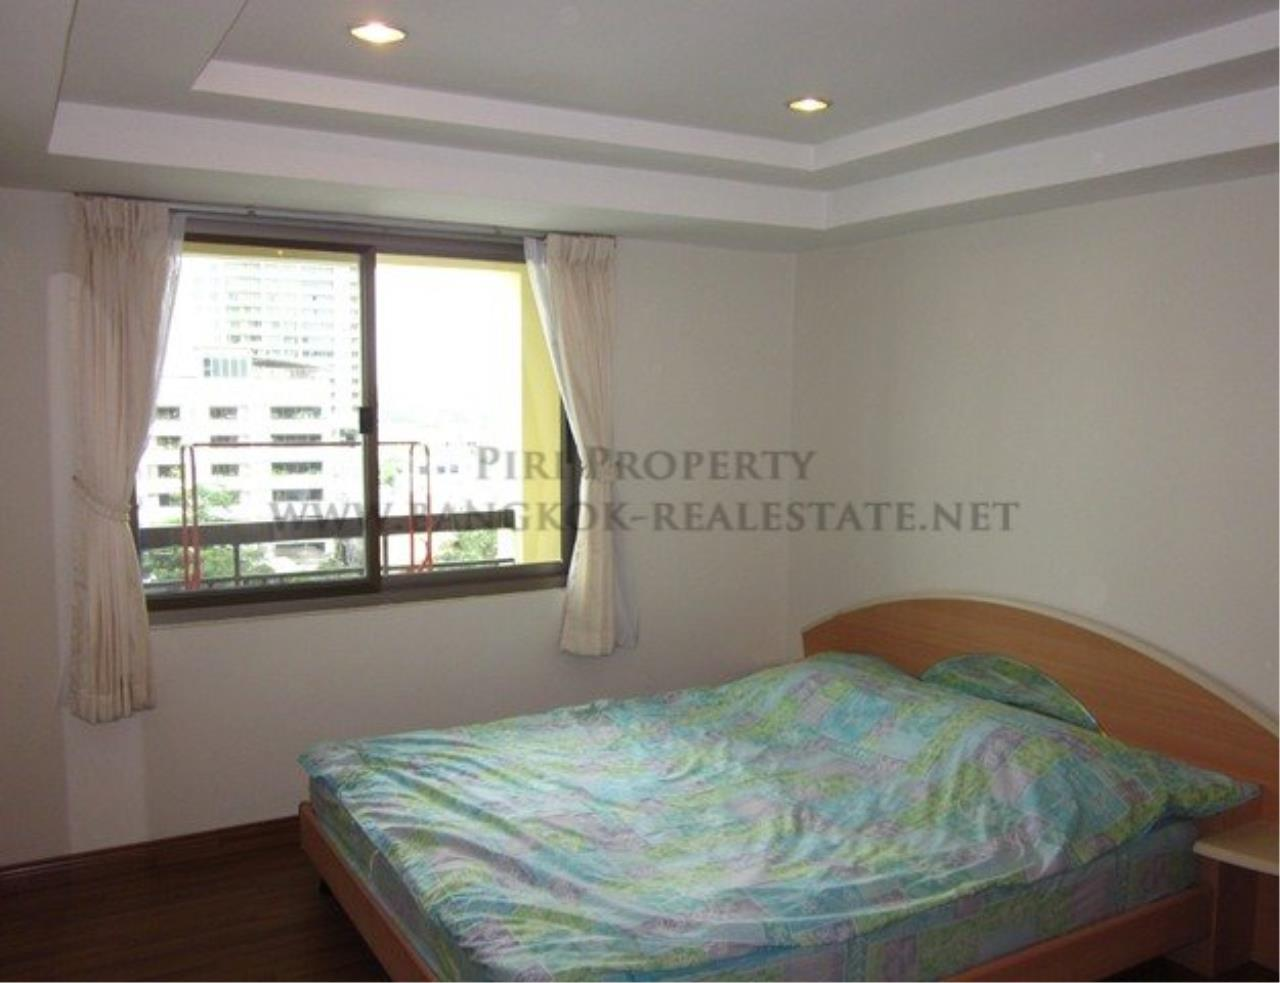 Piri Property Agency's 3 Bedroom in Phrom Phong - Royal Castle Condo for Rent 4